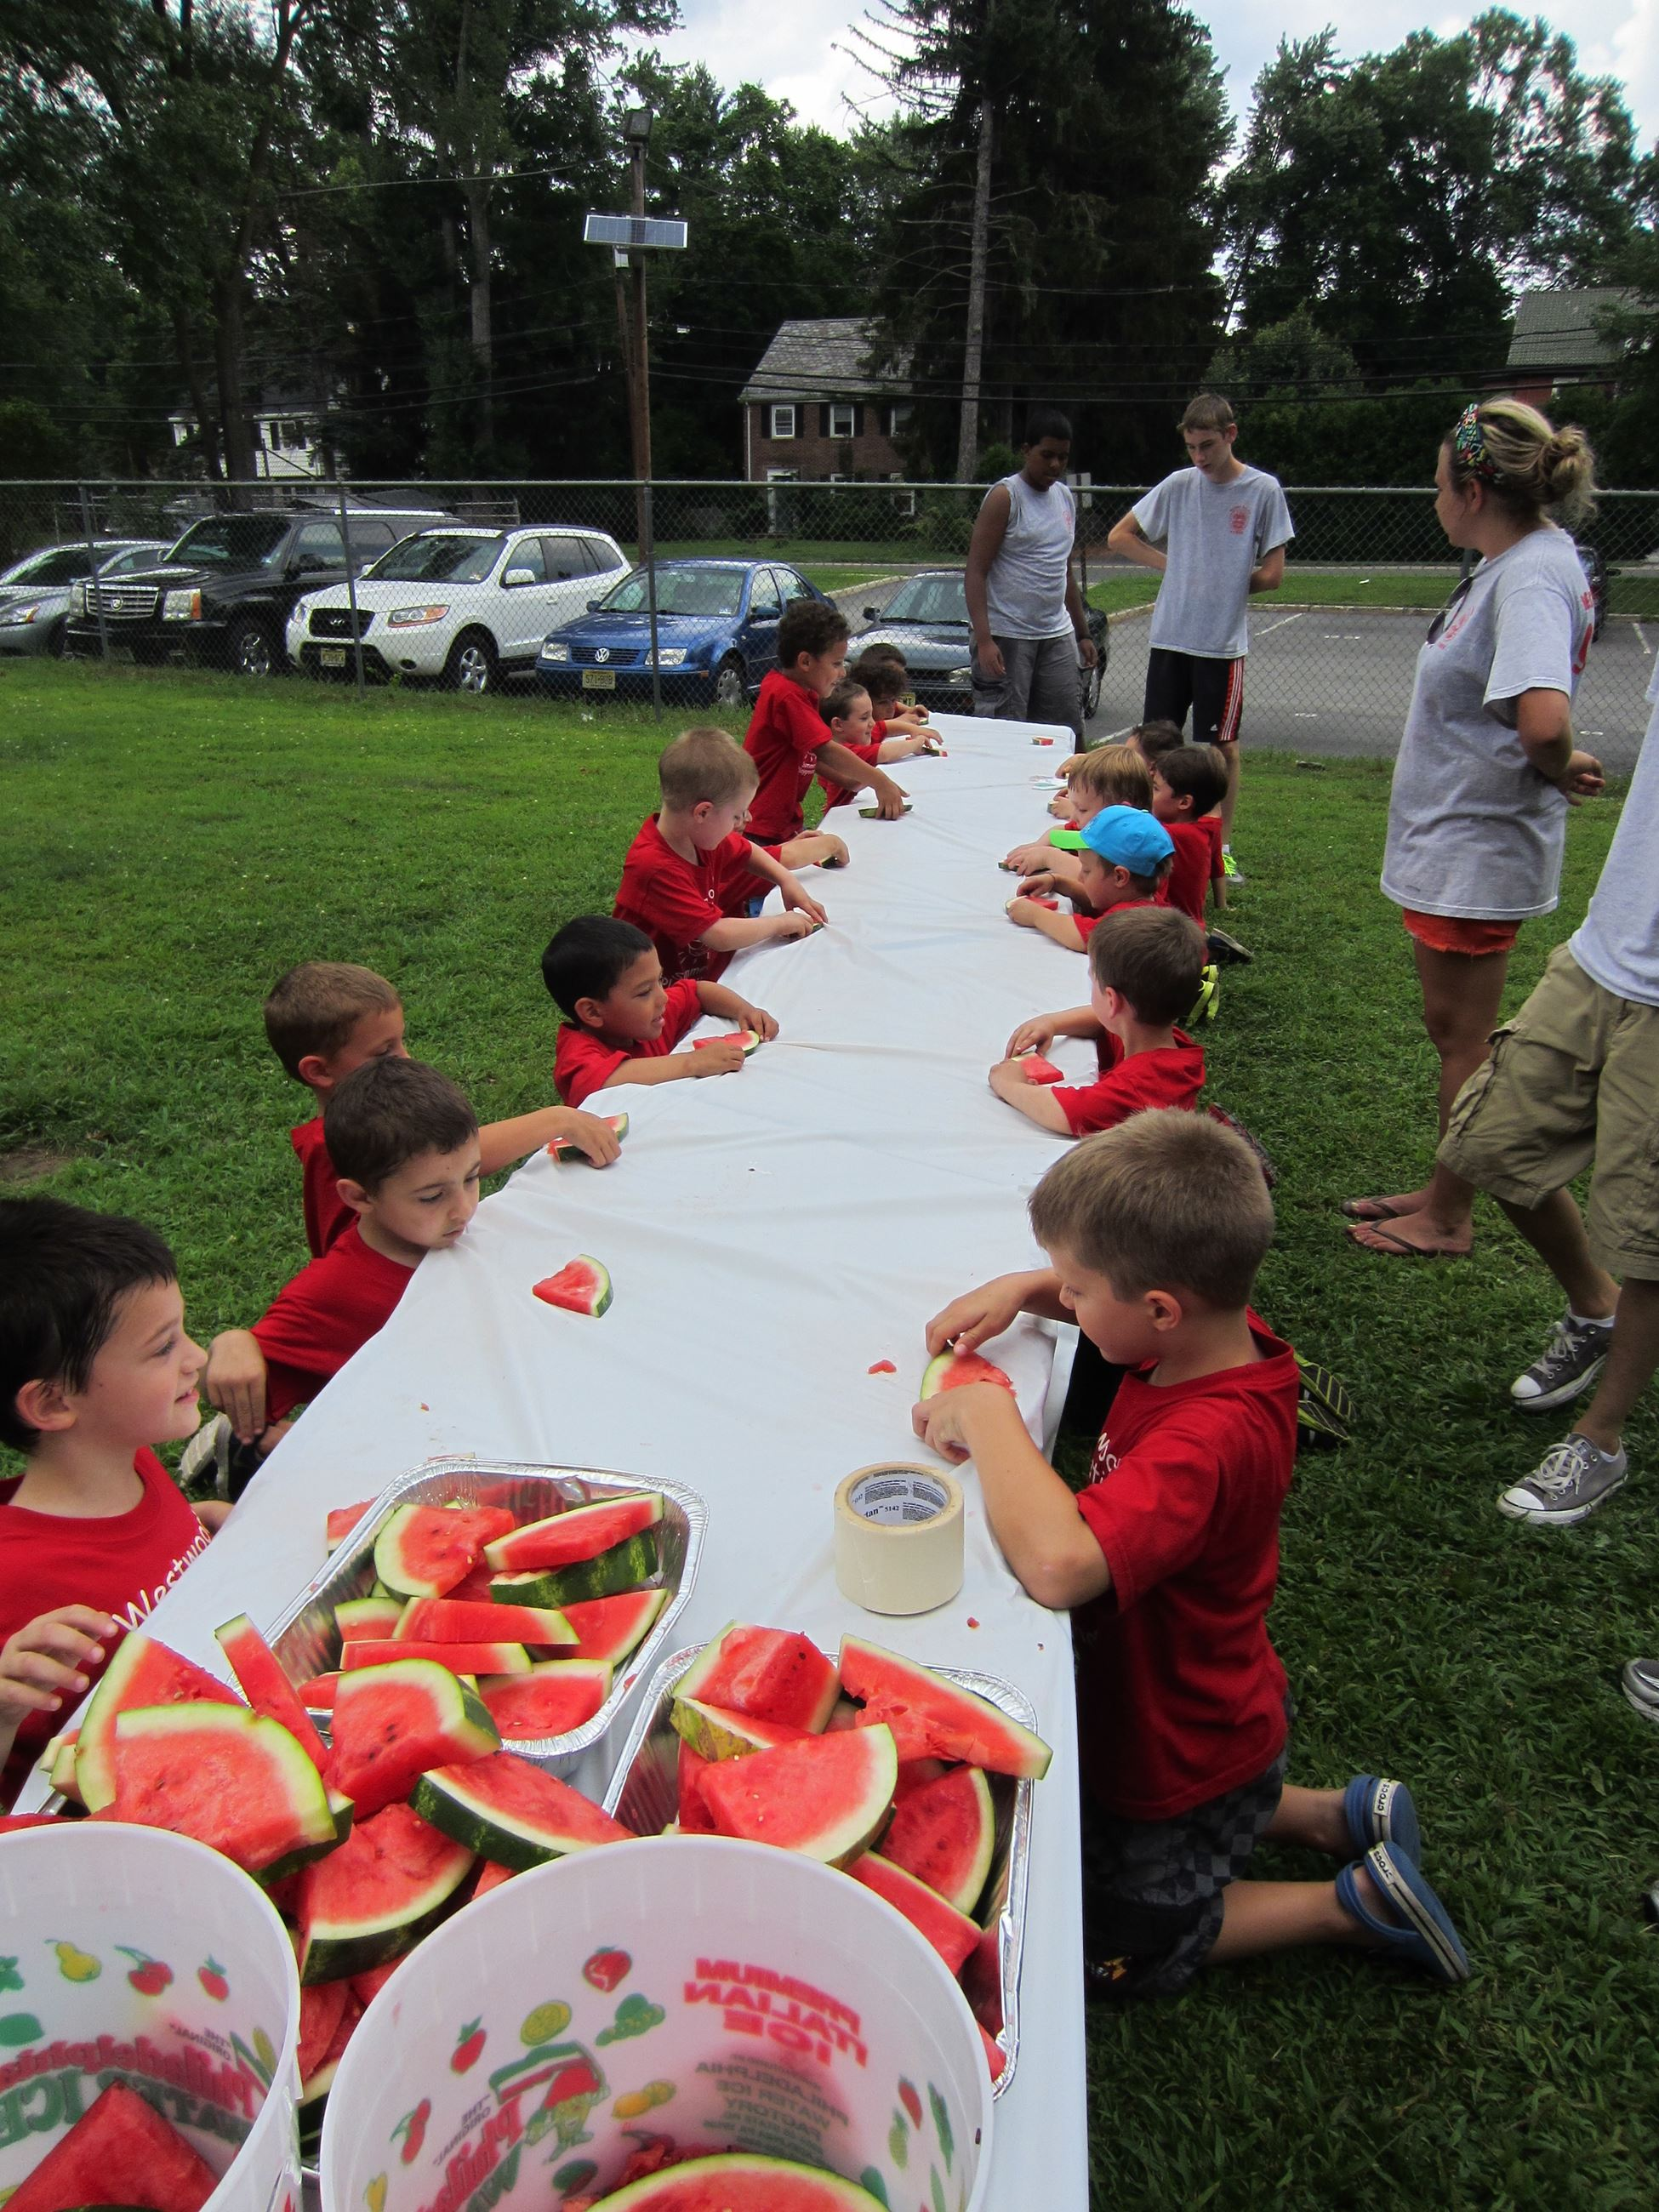 Kids Eating Watermelon at the 2014 Summer Playground